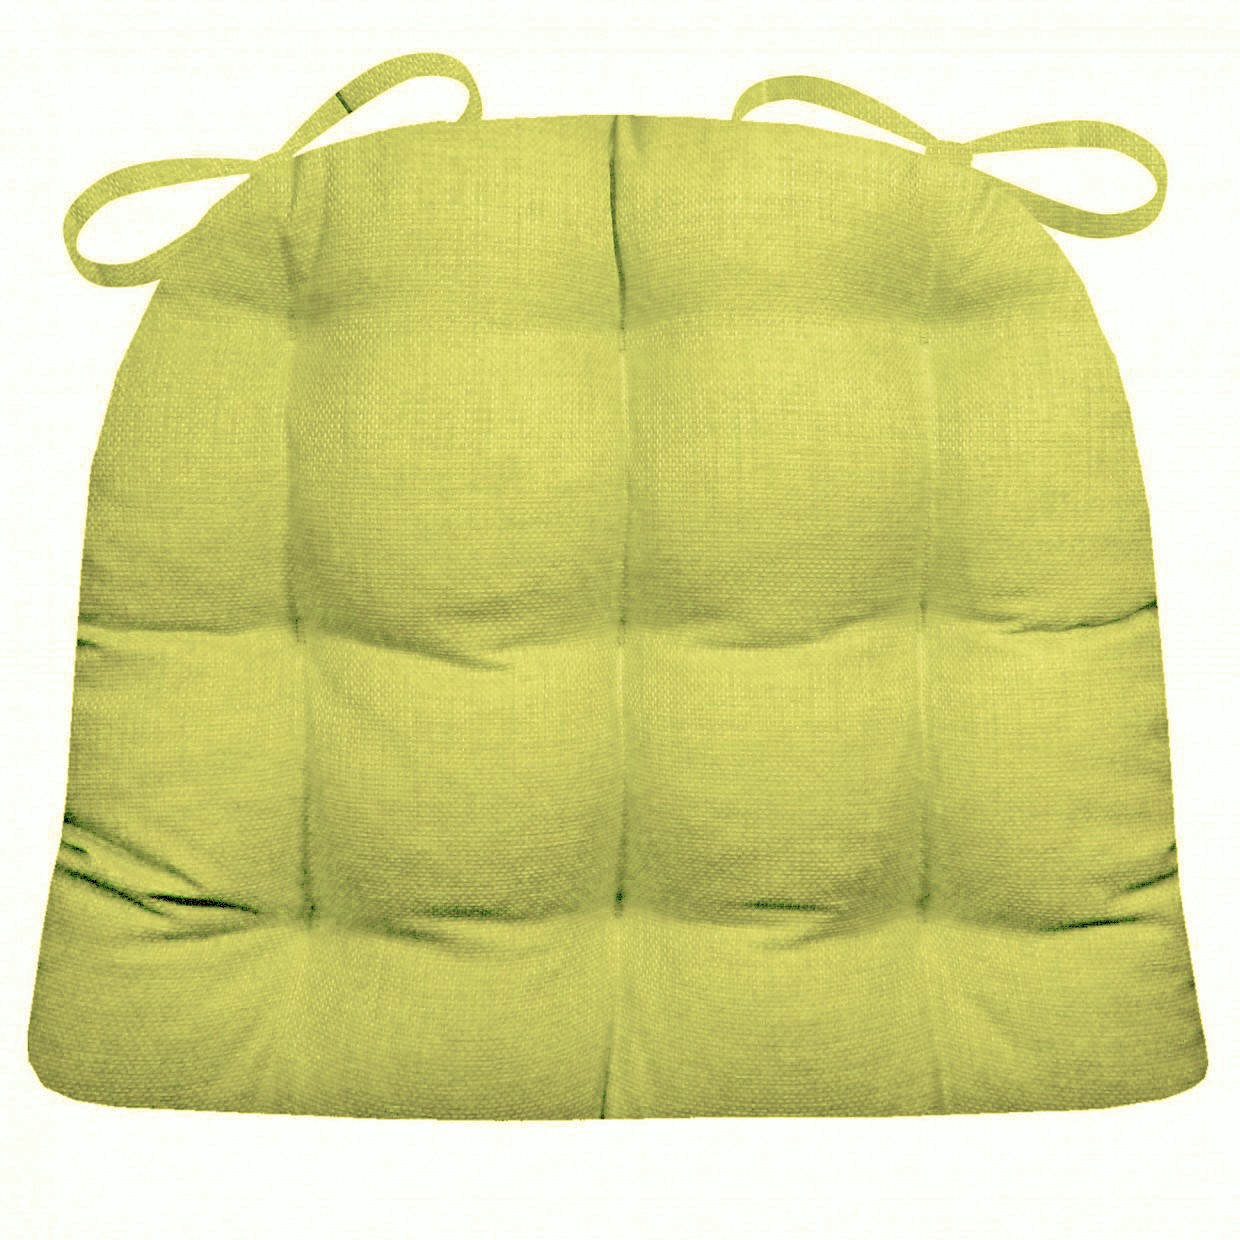 Image of: Simple Patio Chair Cushion Design